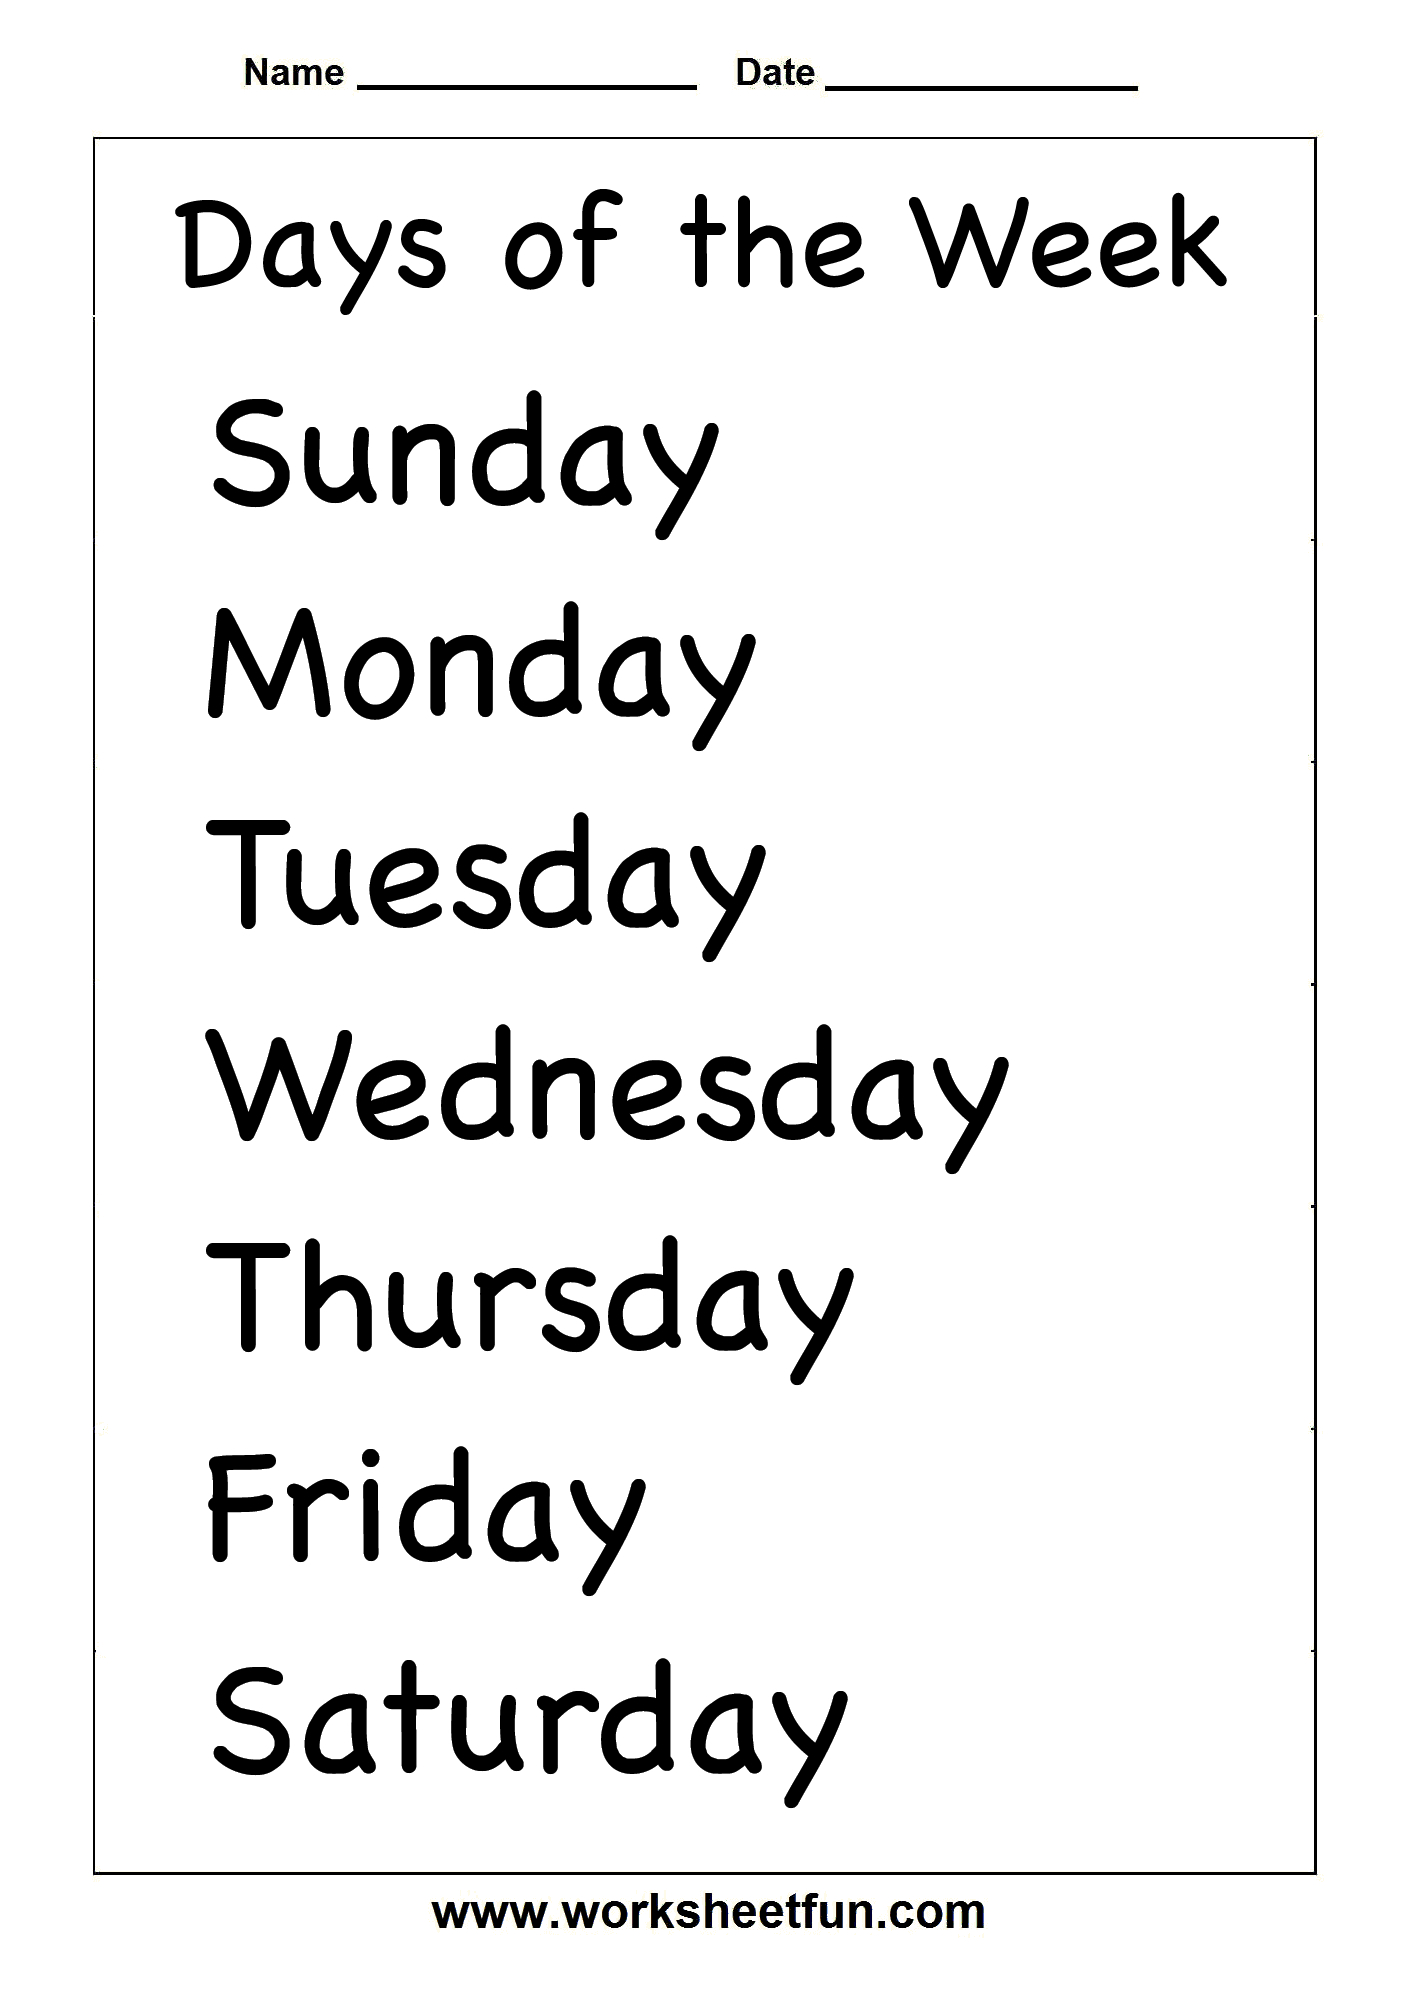 Days Of The Week – Two Worksheets / Free Printable Worksheets - Free Printable Days Of The Week